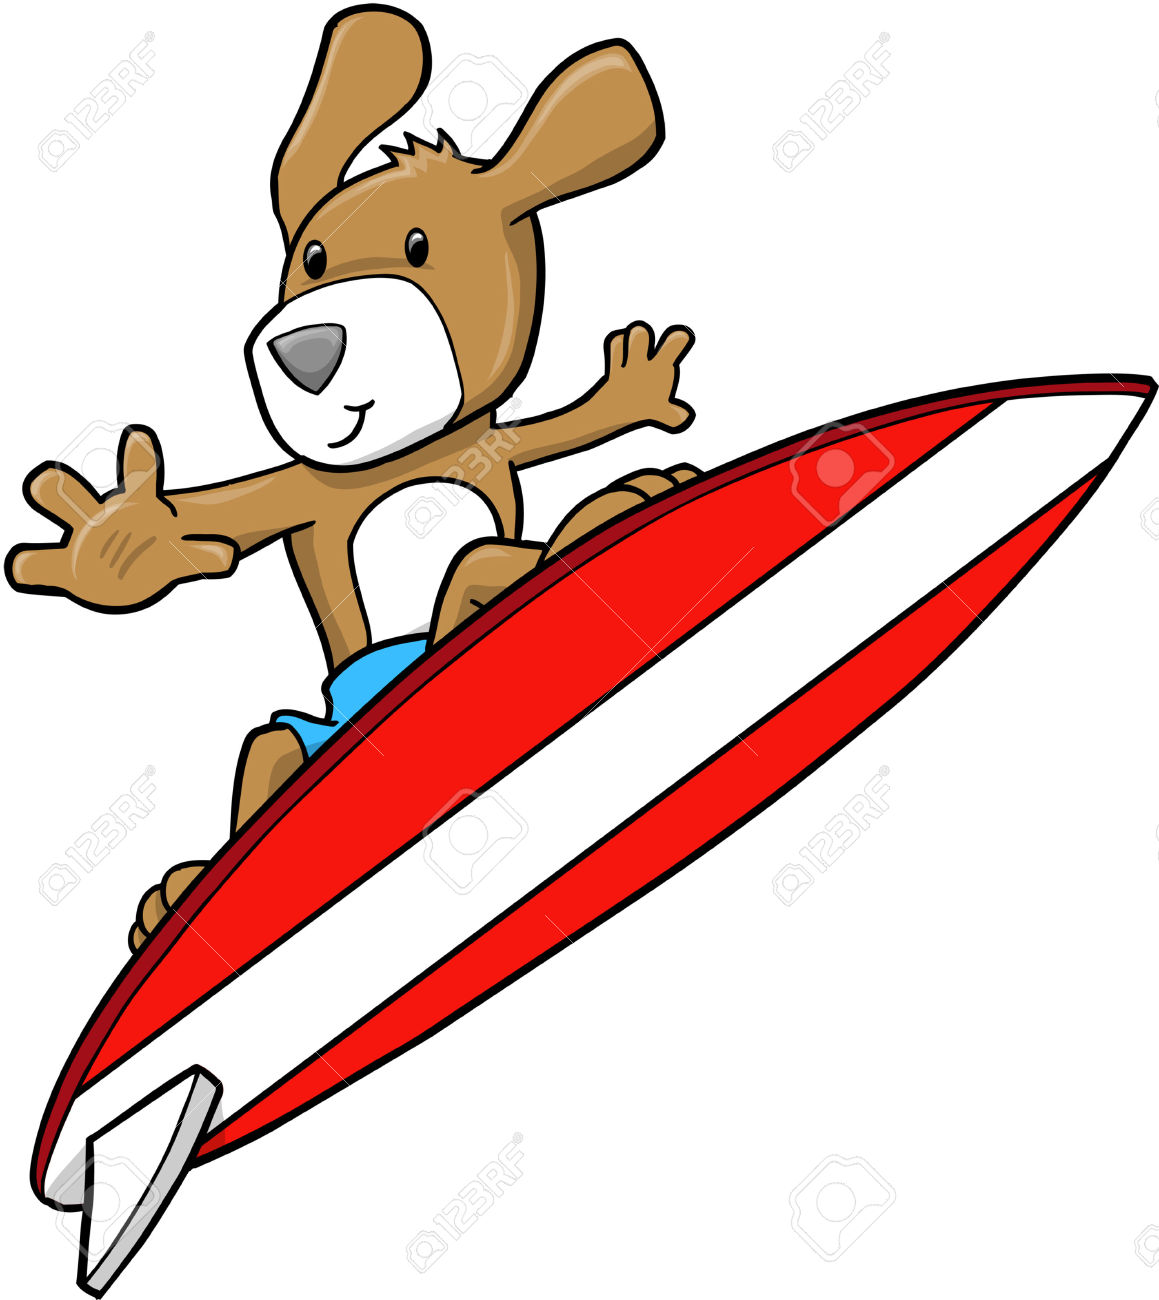 Dog on surfboard clipart image black and white stock Dog surfing clipart - ClipartFest image black and white stock